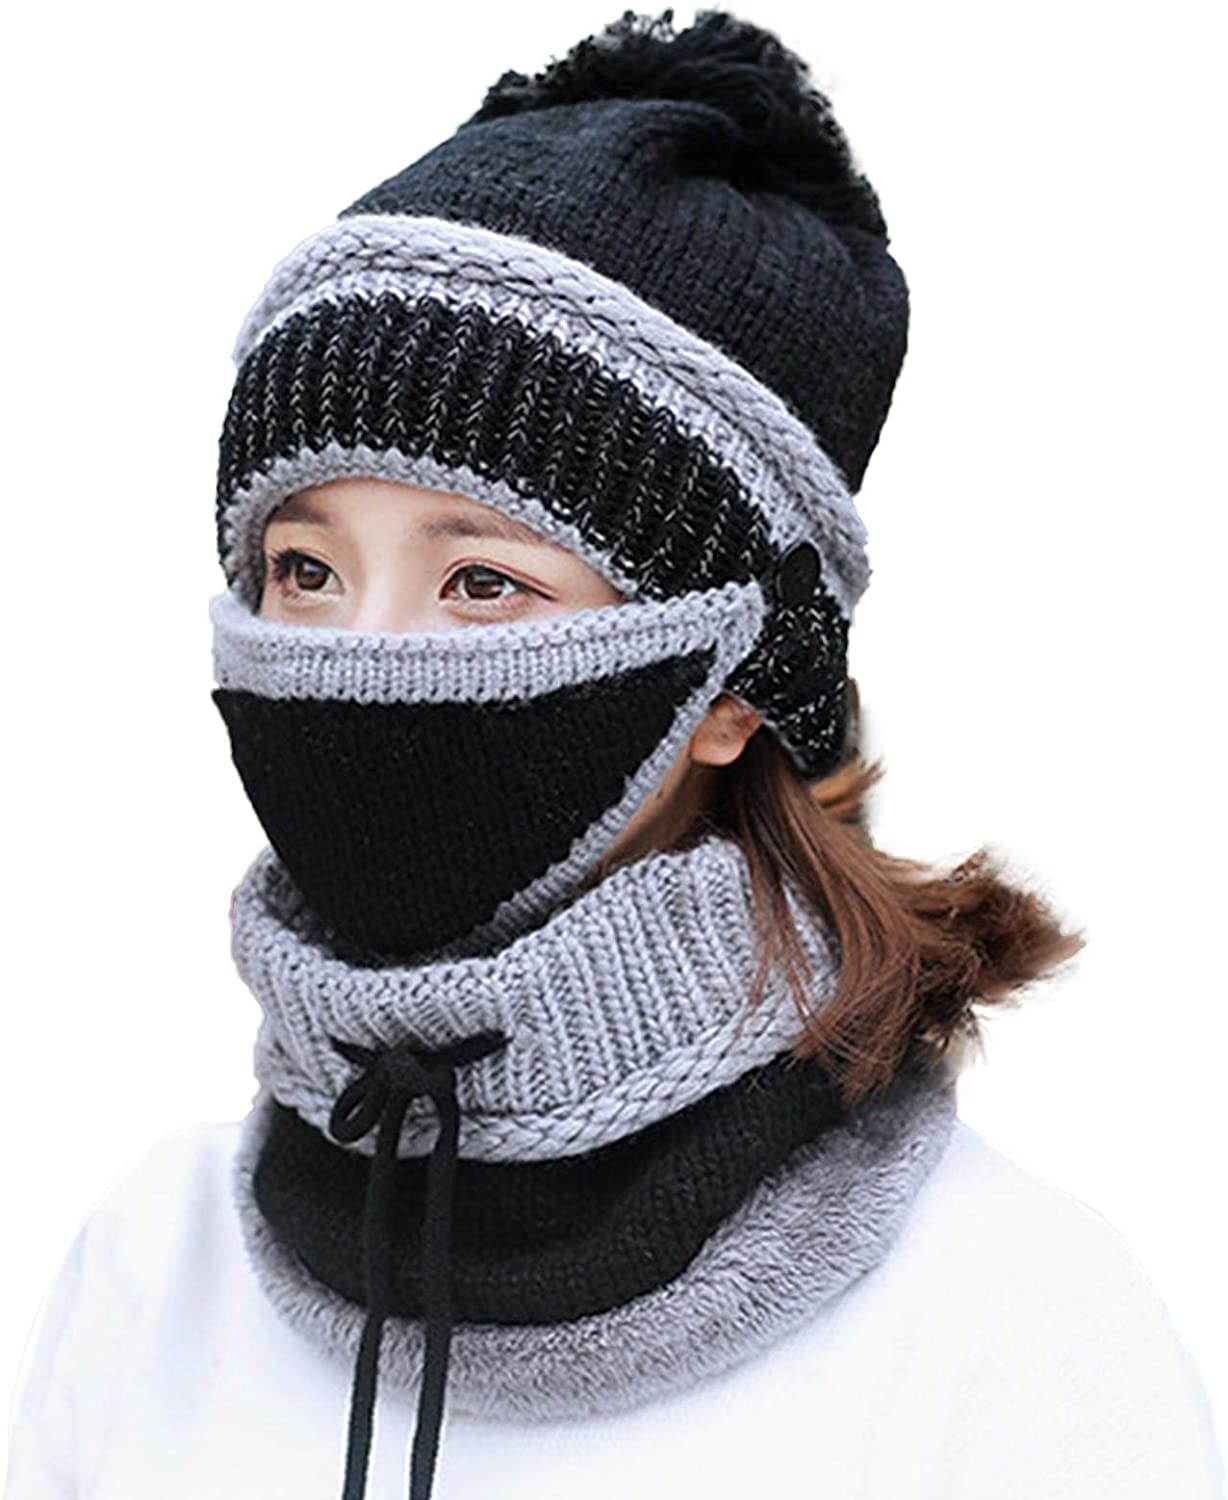 Rivetino Women Scarf Set 3-in-1 Winter Warm Scarf Set Indoor Outdoor Soft Beanie Thick Knitted Woolen Cap hat Scarf for Indoor and Outdoor Sports